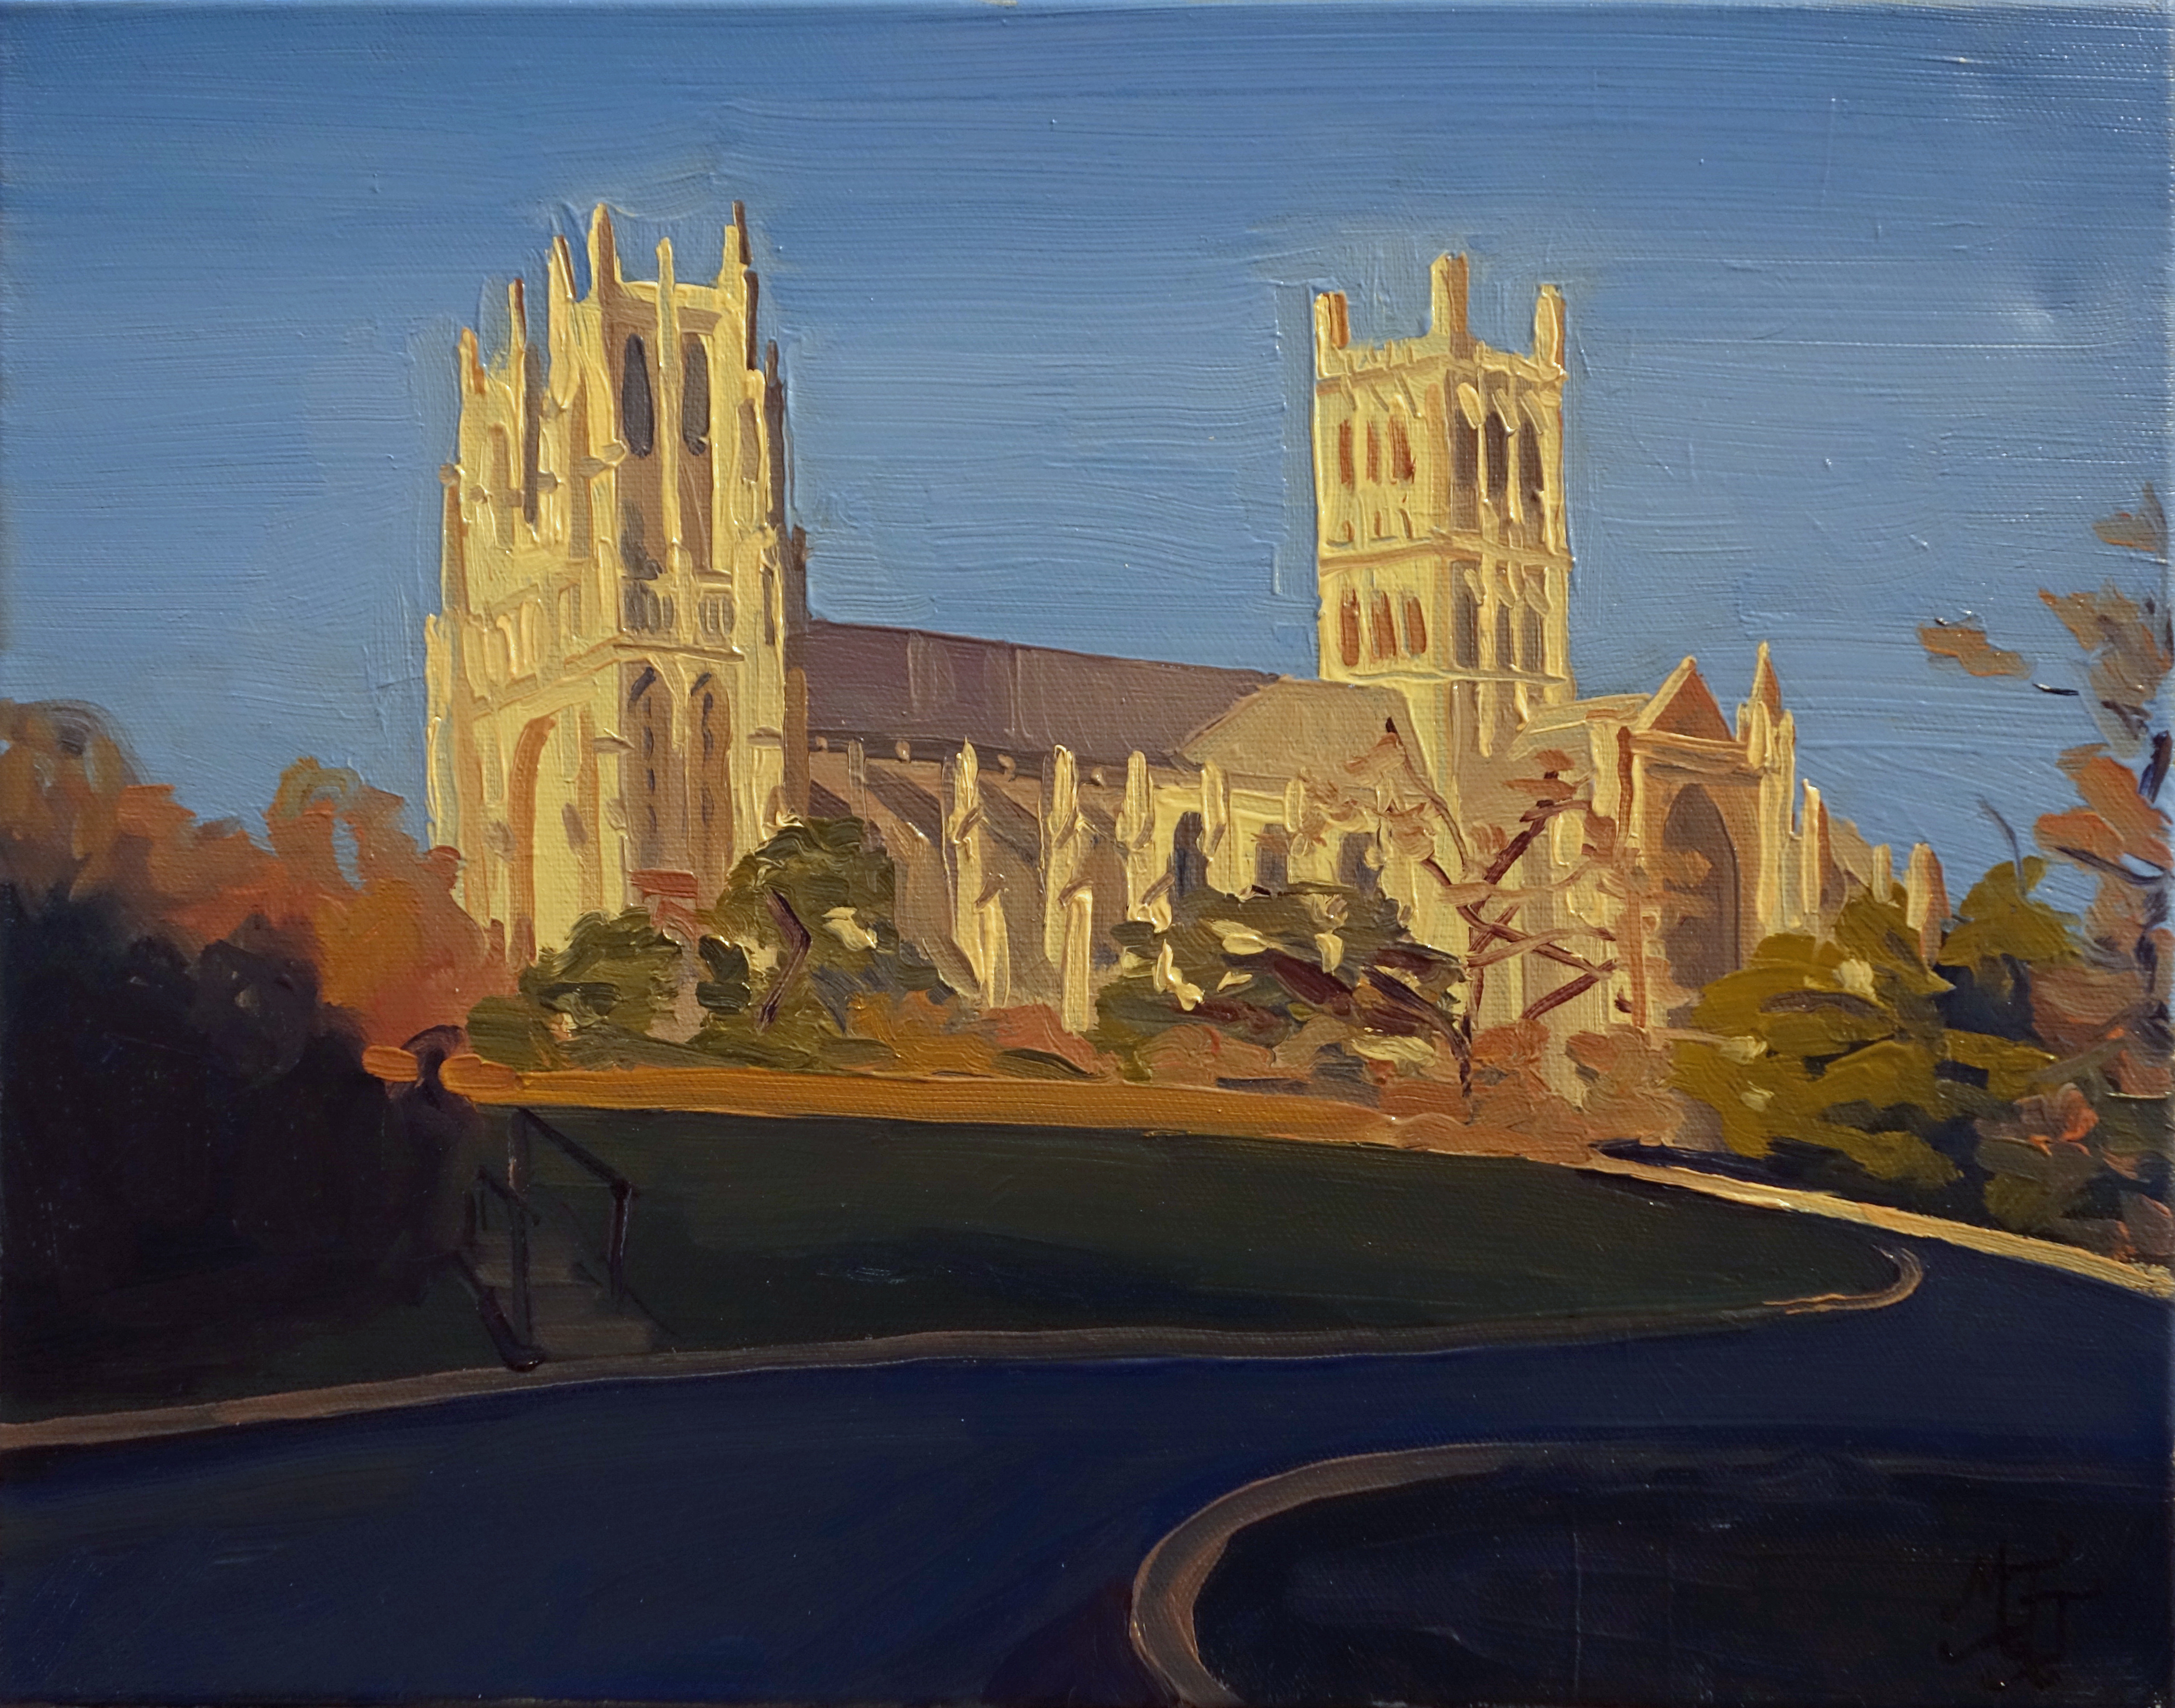 National_Cathedral_in_Afternoon_Light_Oil_on_Canvas_Painting_11x14_Maud_Taber_Thomas_Washington_DC_Georgetown